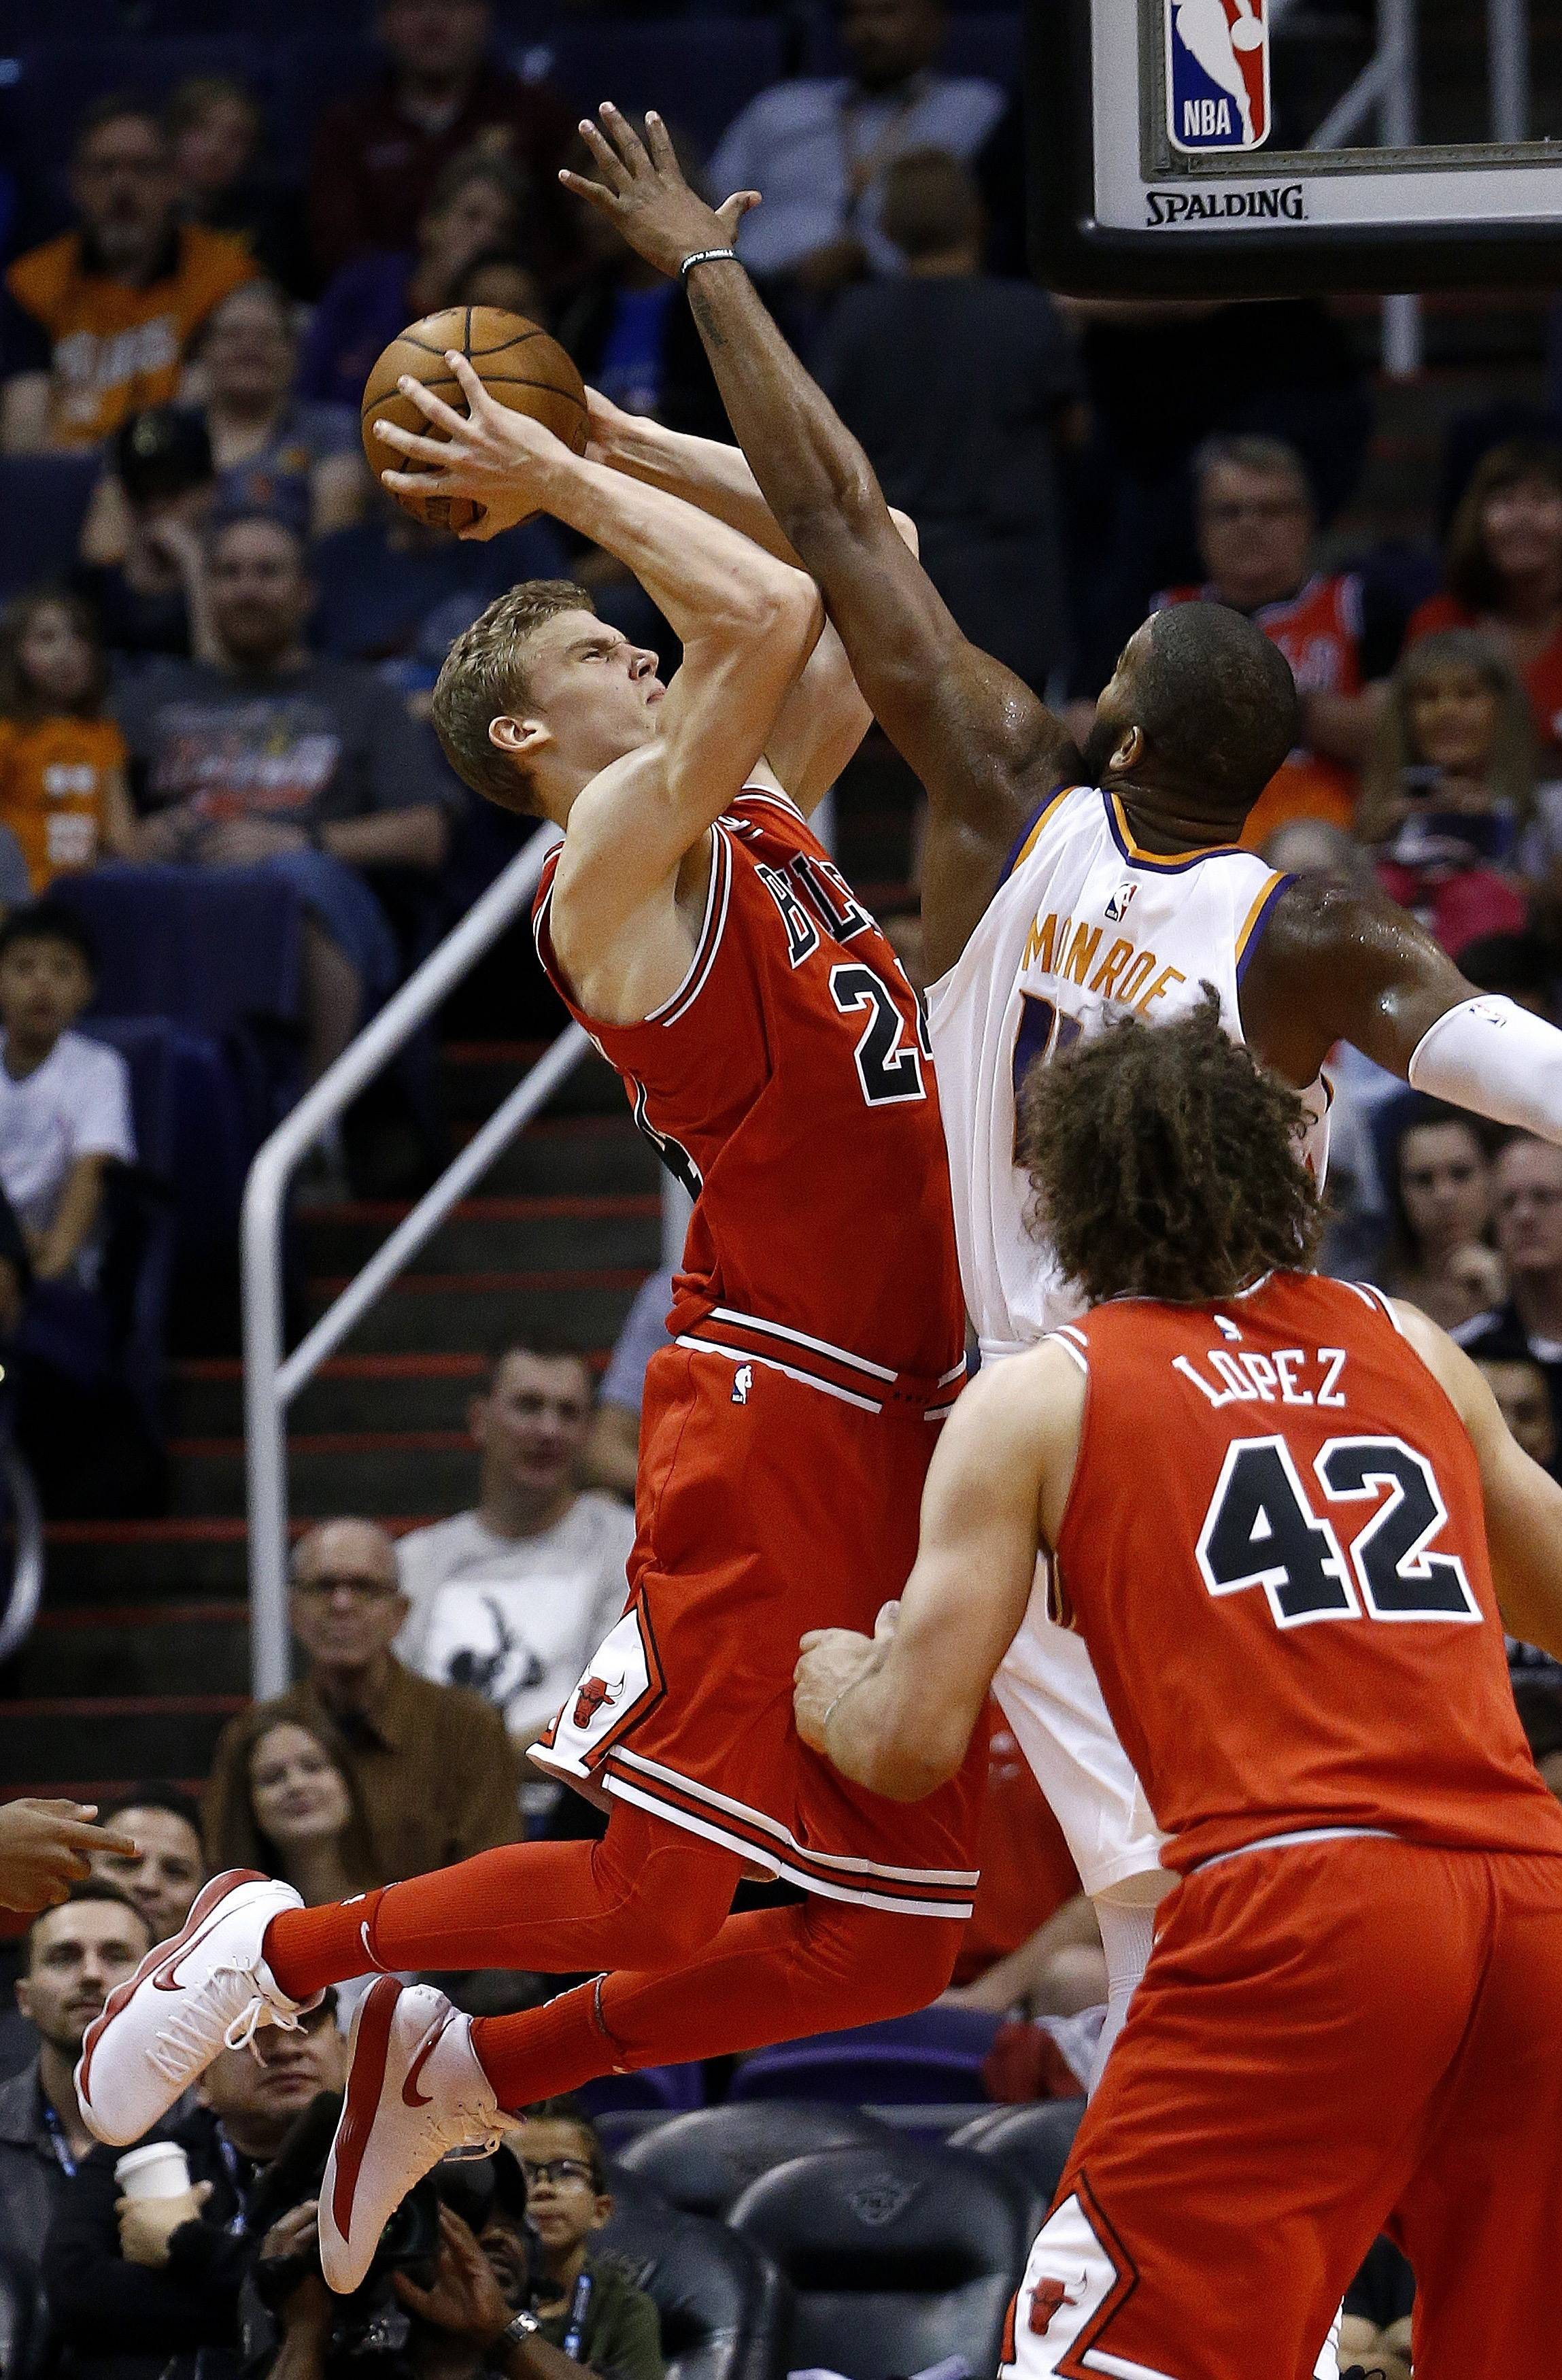 Chicago Bulls forward Lauri Markkanen, left, shoots as he is fouled by Phoenix Suns center Greg Monroe, back right, while Bulls' Robin Lopez (42) watches during the first half of an NBA basketball game Sunday, Nov. 19, 2017, in Phoenix. (AP Photo/Ross D. Franklin)